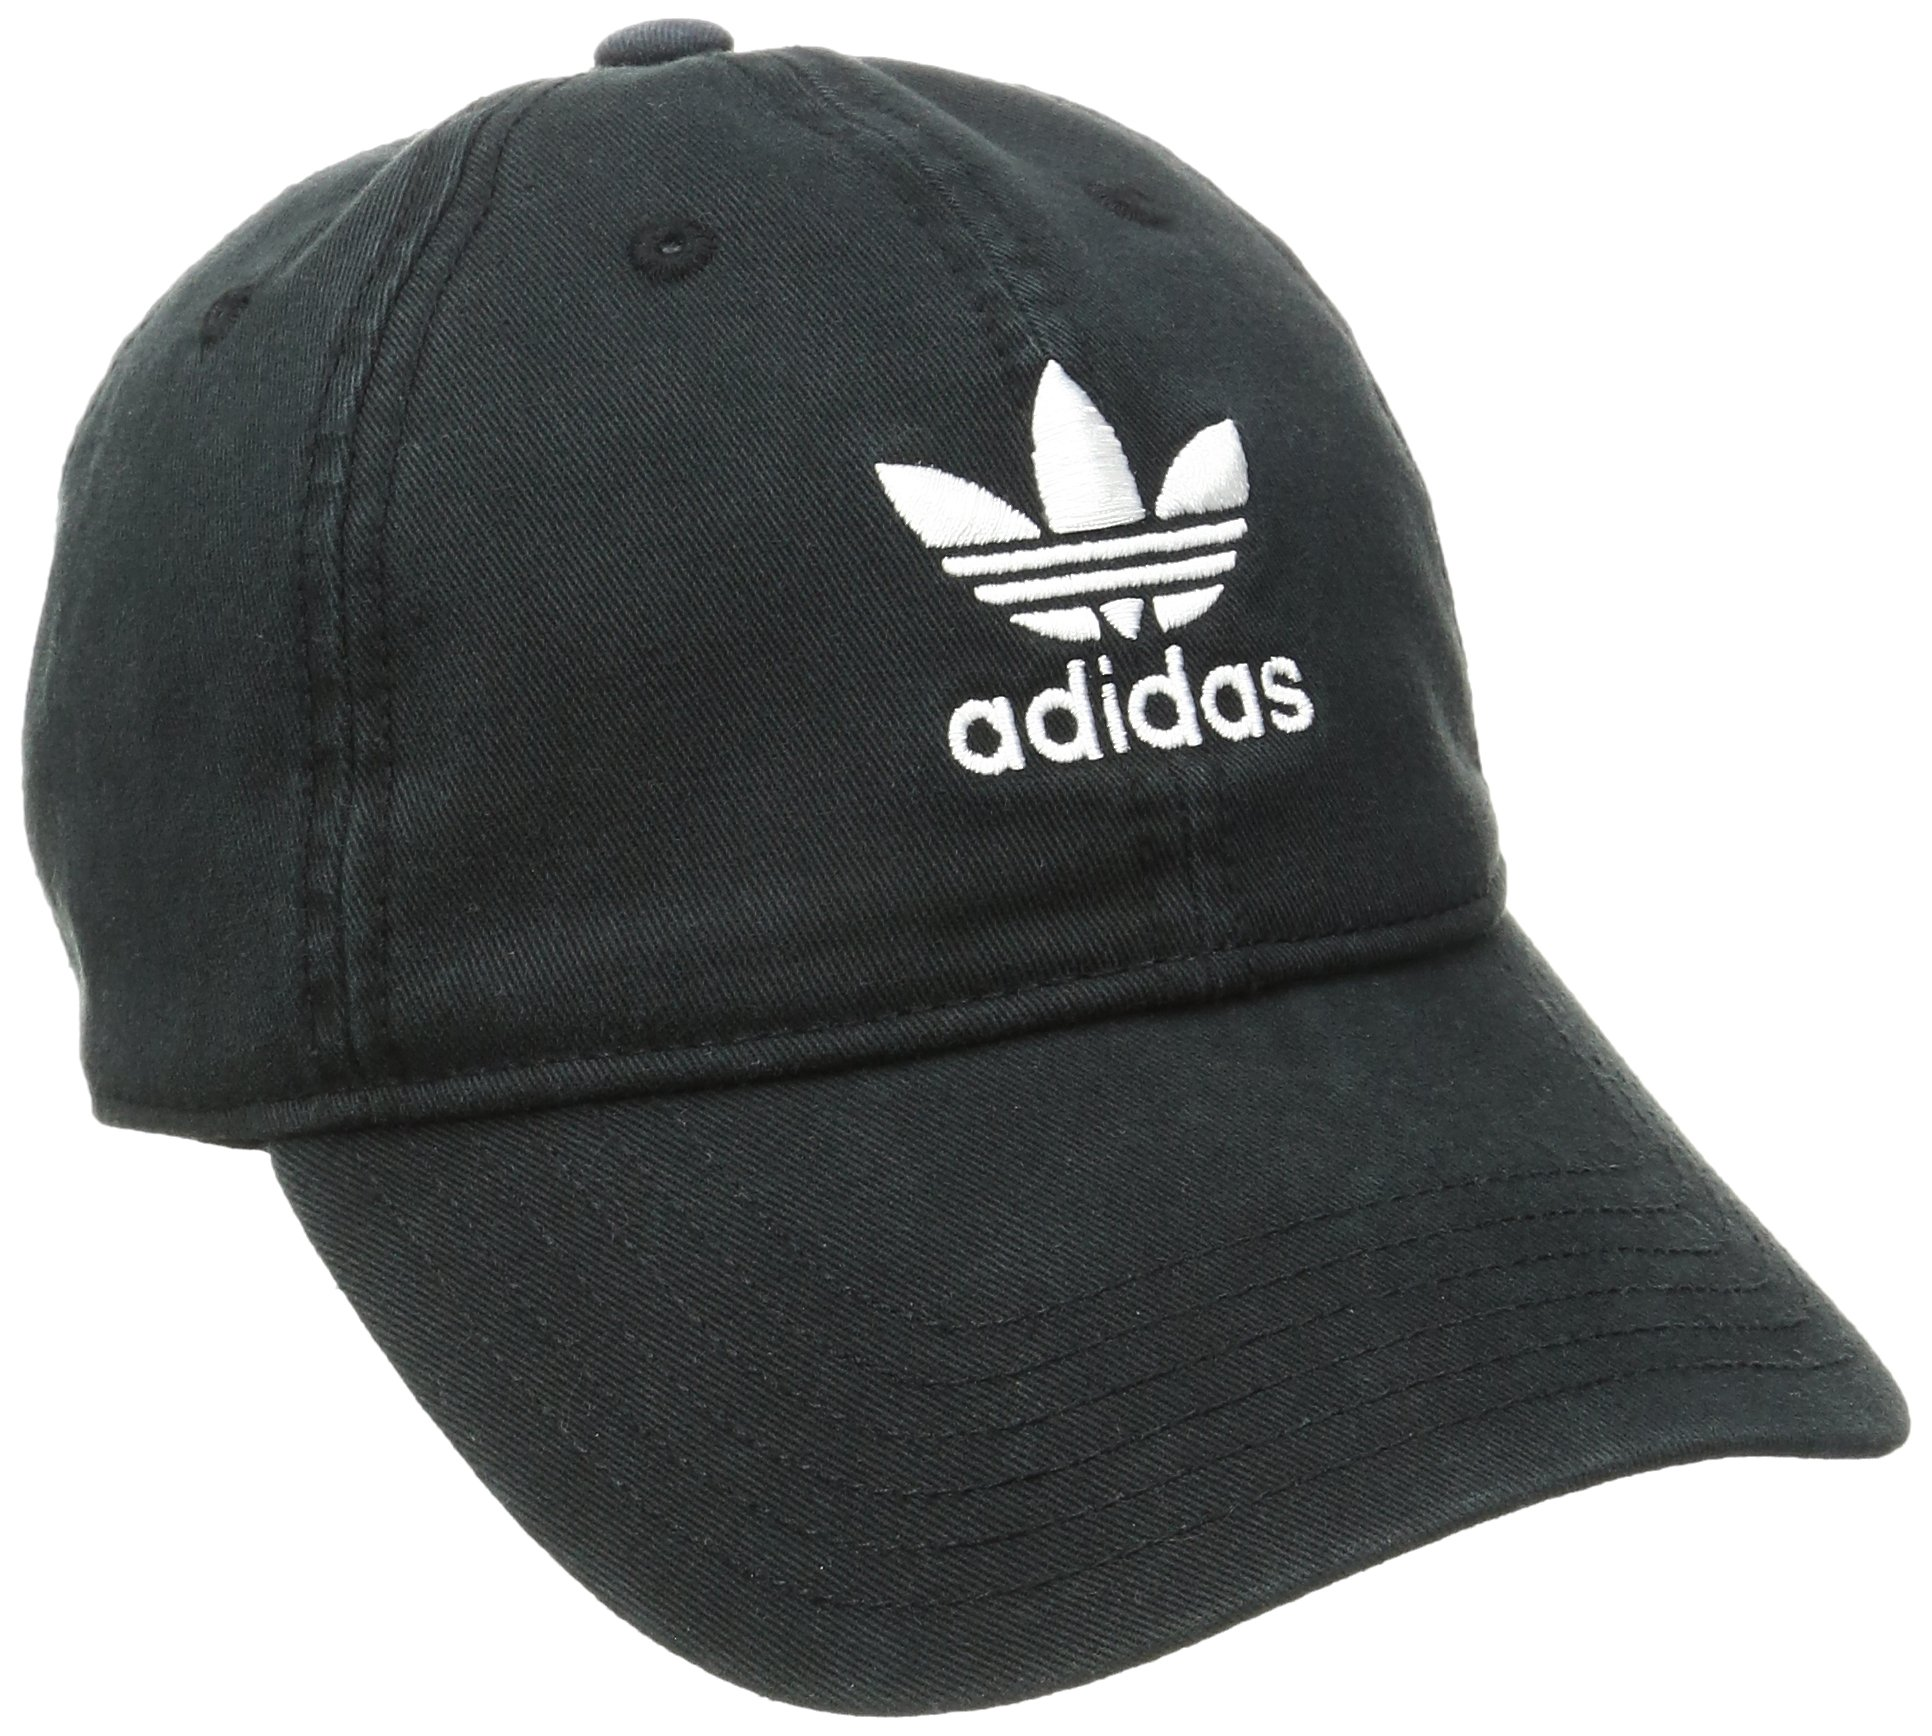 adidas Women's Originals Relaxed Fit Cap, One Size, Black/White by adidas (Image #1)